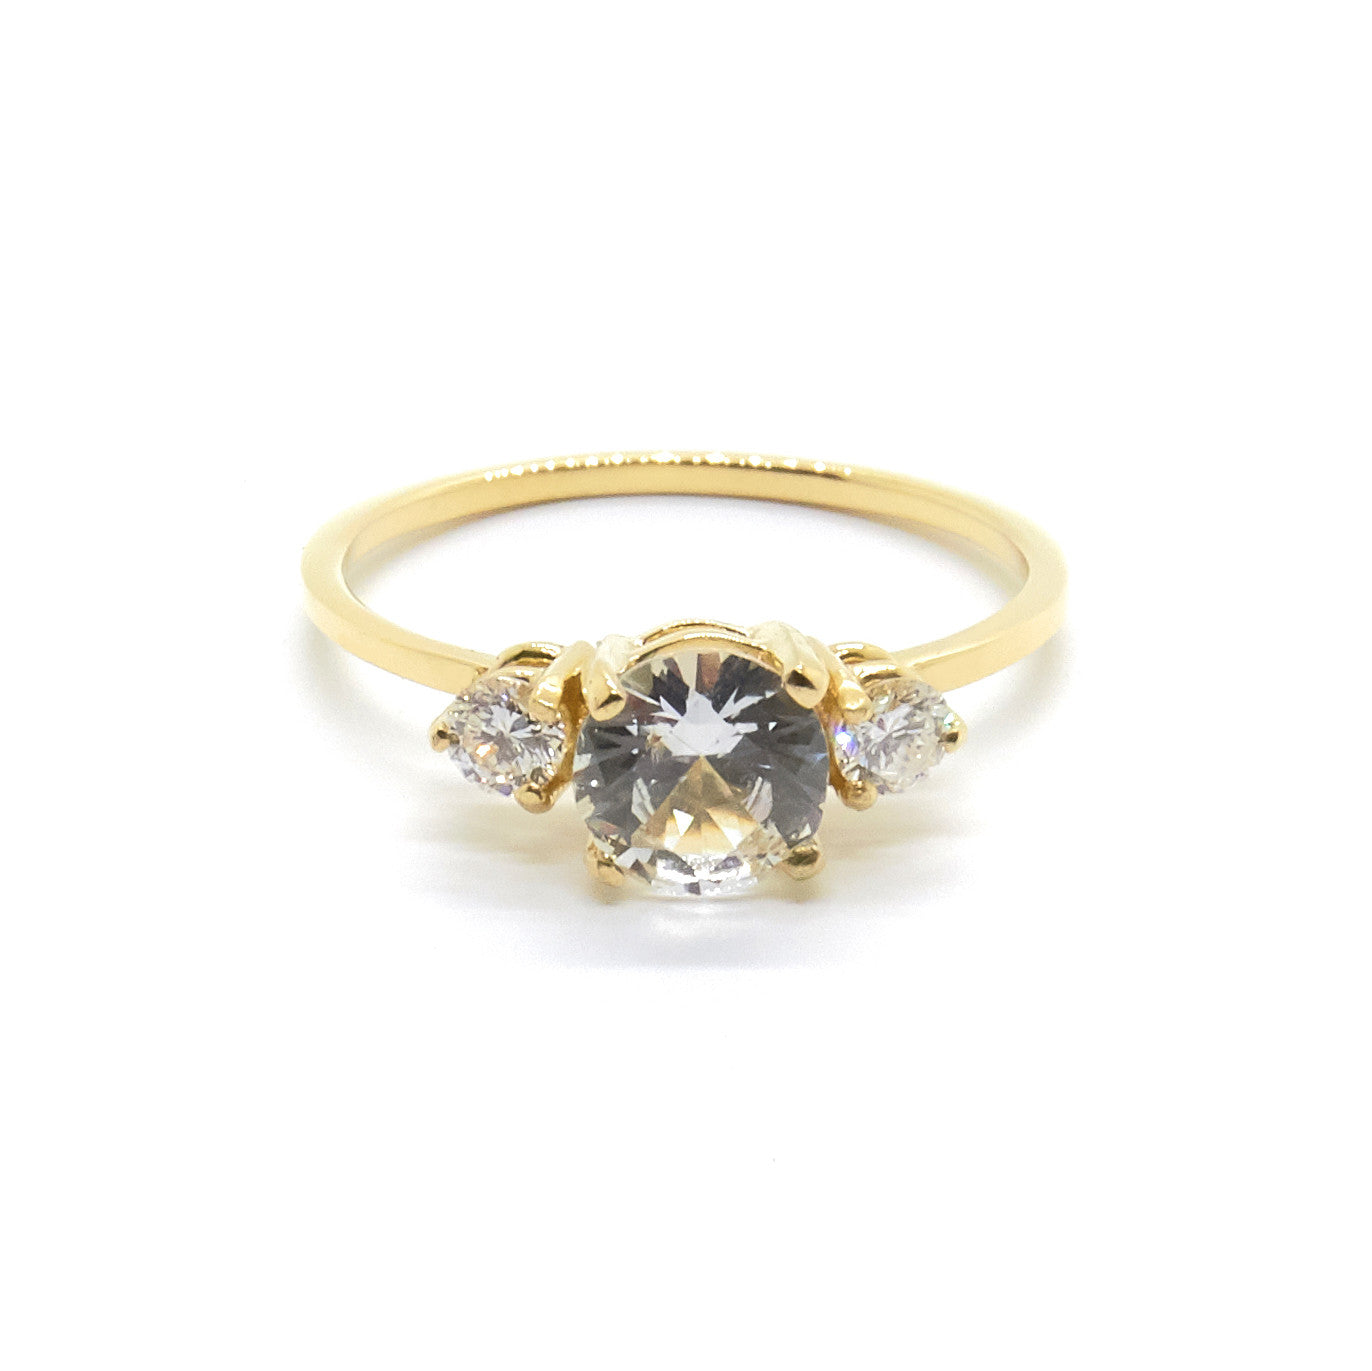 Petite Precious Trio Ring | White Sapphire & Diamonds